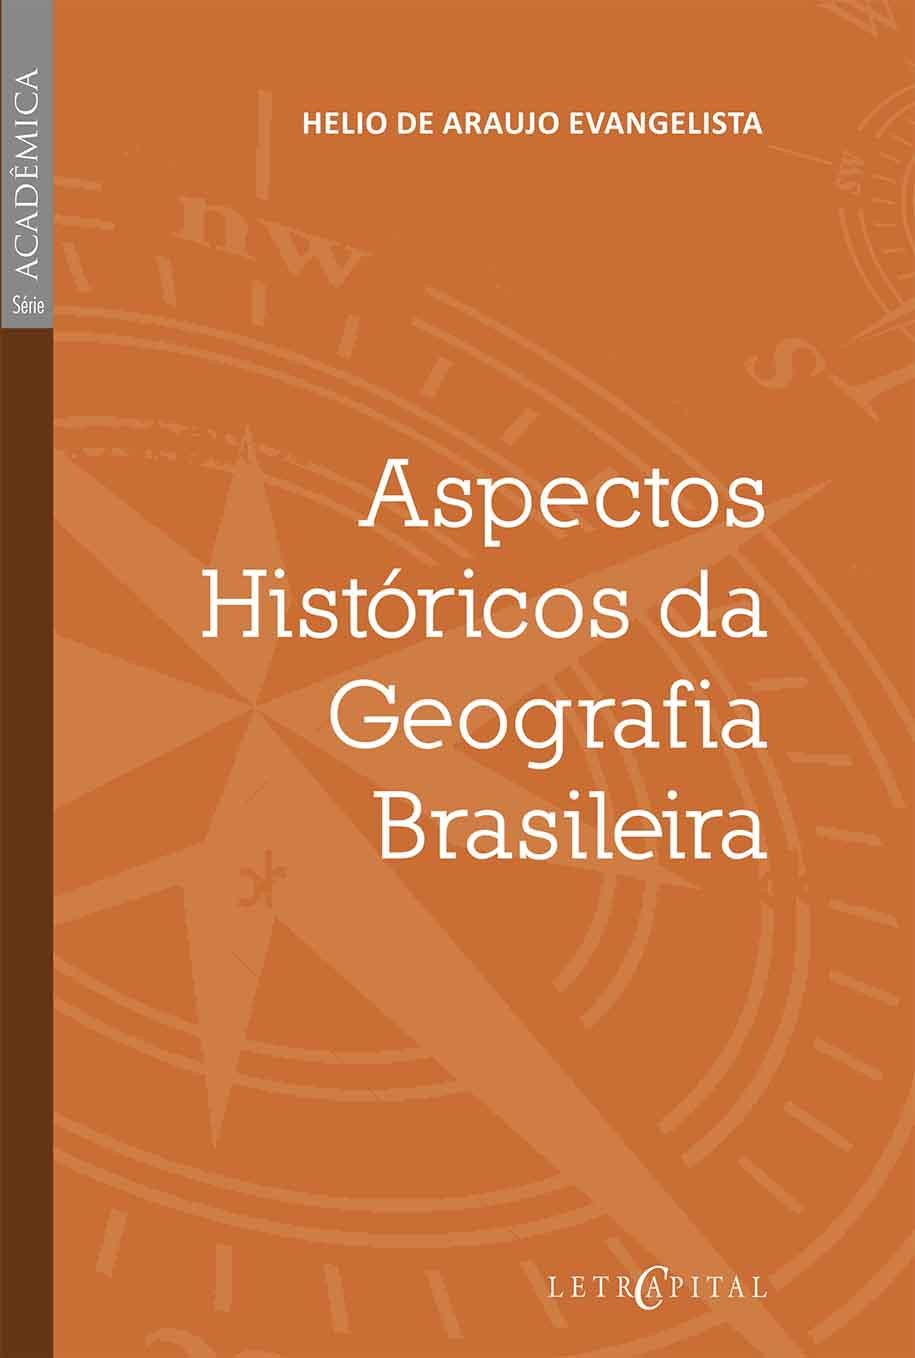 Aspectos Históricos da Geografia Brasileira